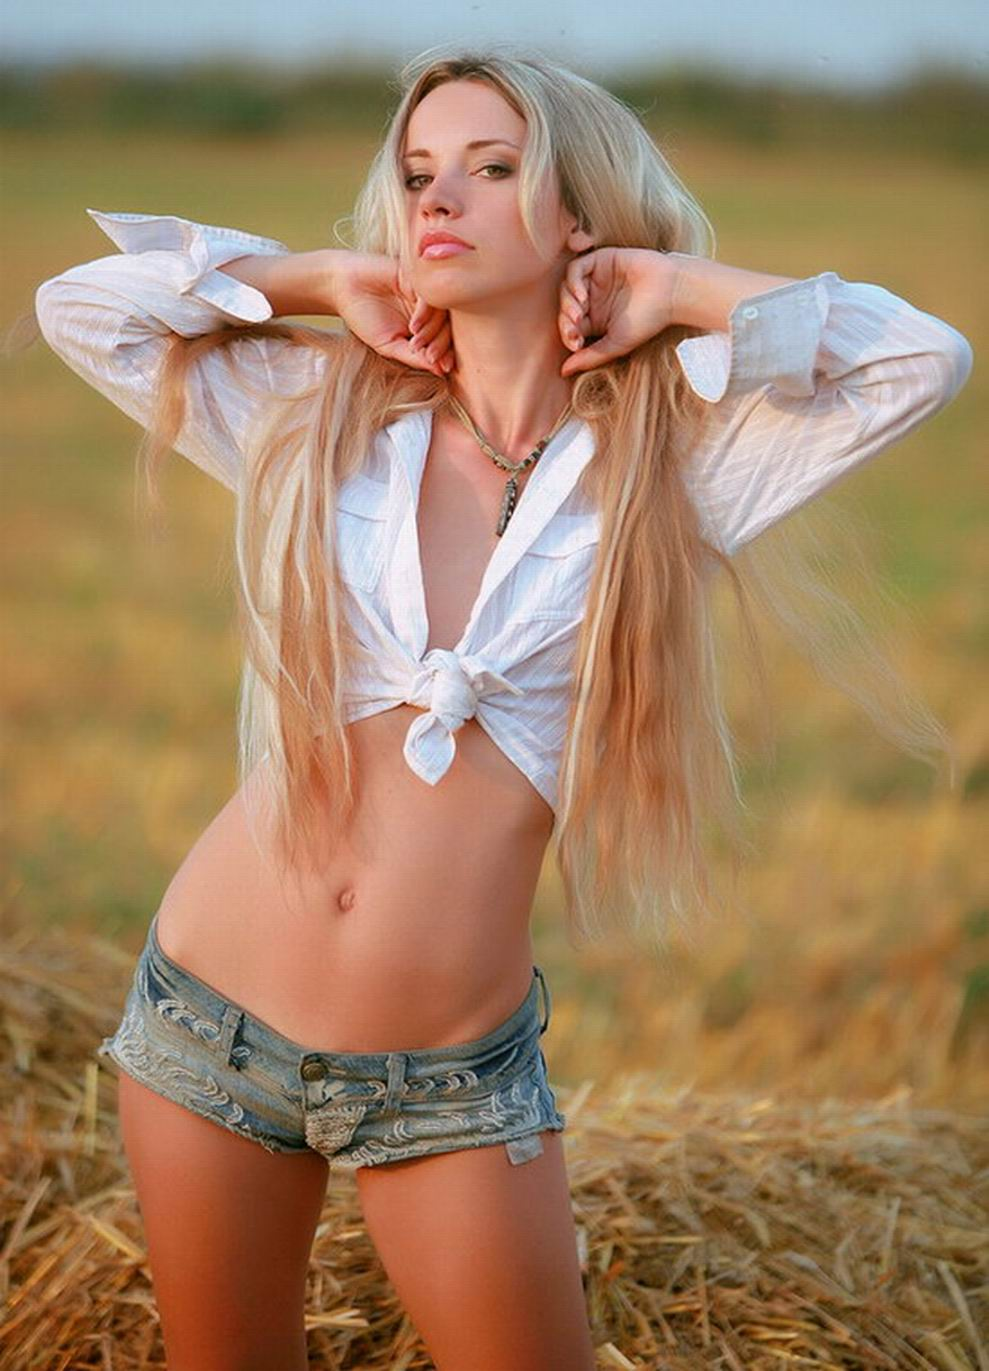 Hot Skinny Body Nasty Blonde Babe